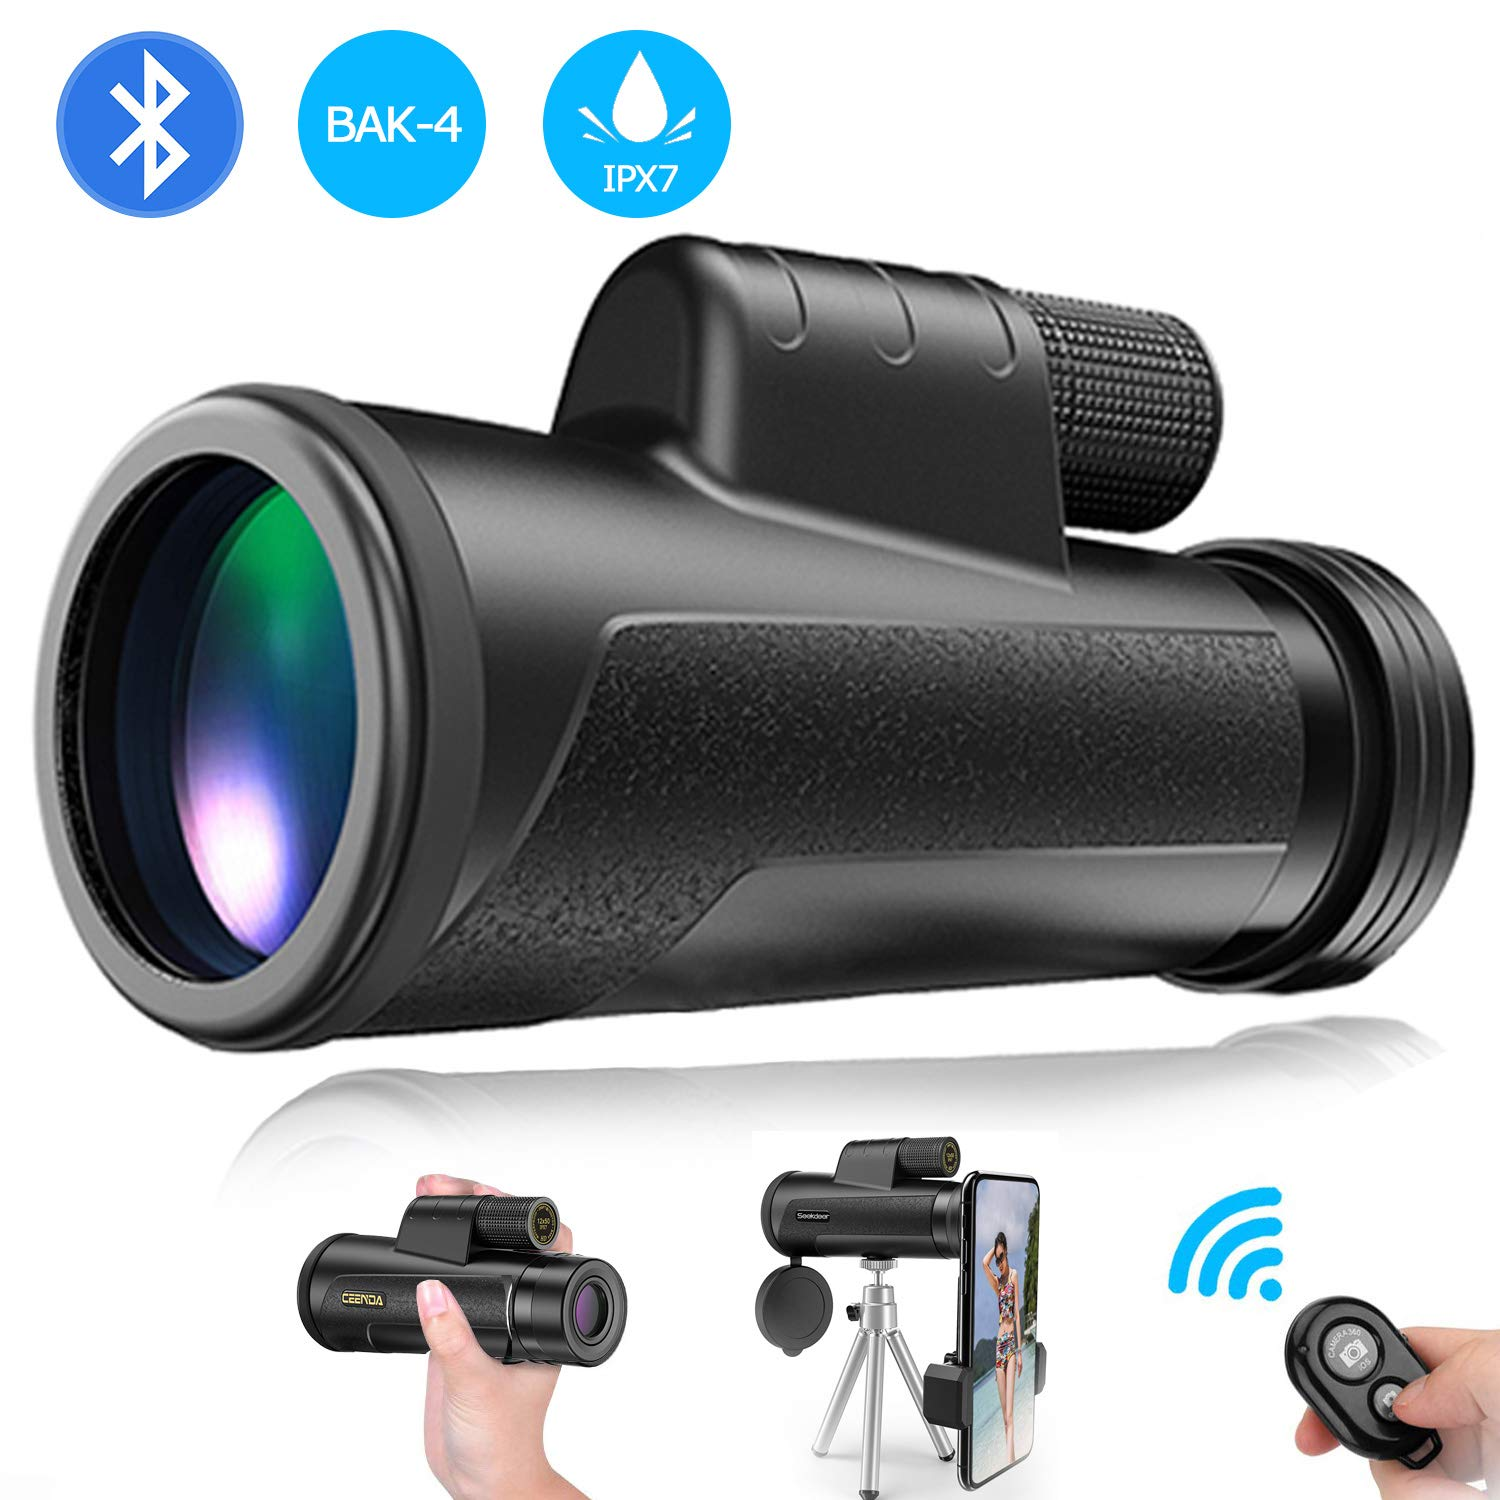 Monocular Telescope with Smartphone Holder - 12X50 High Power HD Monocular, Camera Shutter, Waterproof IPX7, BAK4 Prism, Tripod for Watching Wildlife Bird Hunting Camping Travel by HMCC